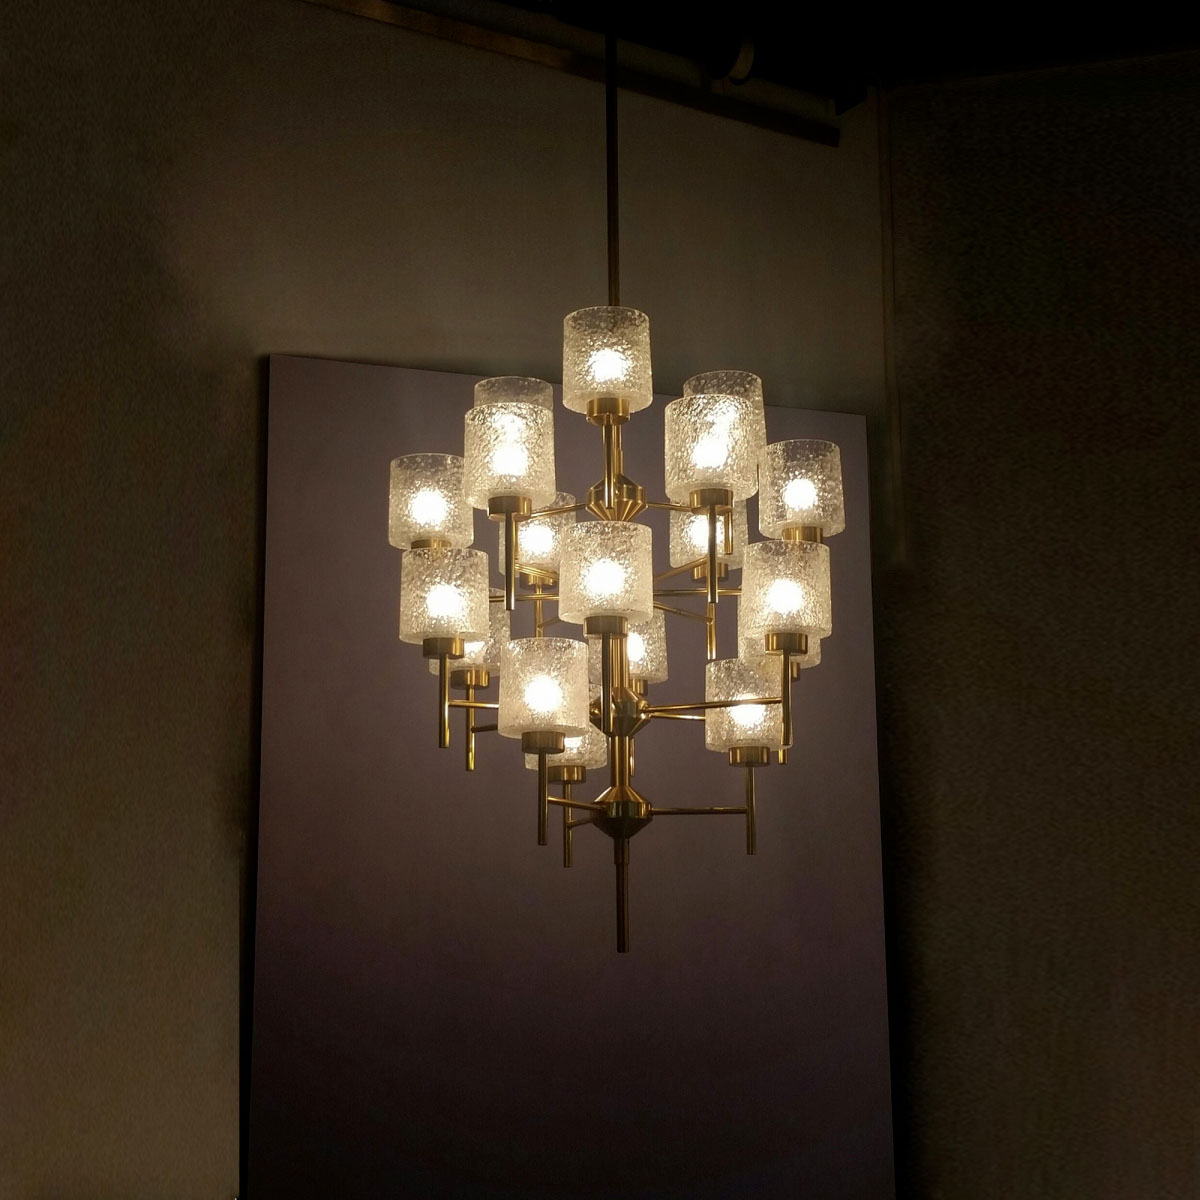 Two ceiling lamps with 18 arms each Hans Agne Jakobsson pic-1